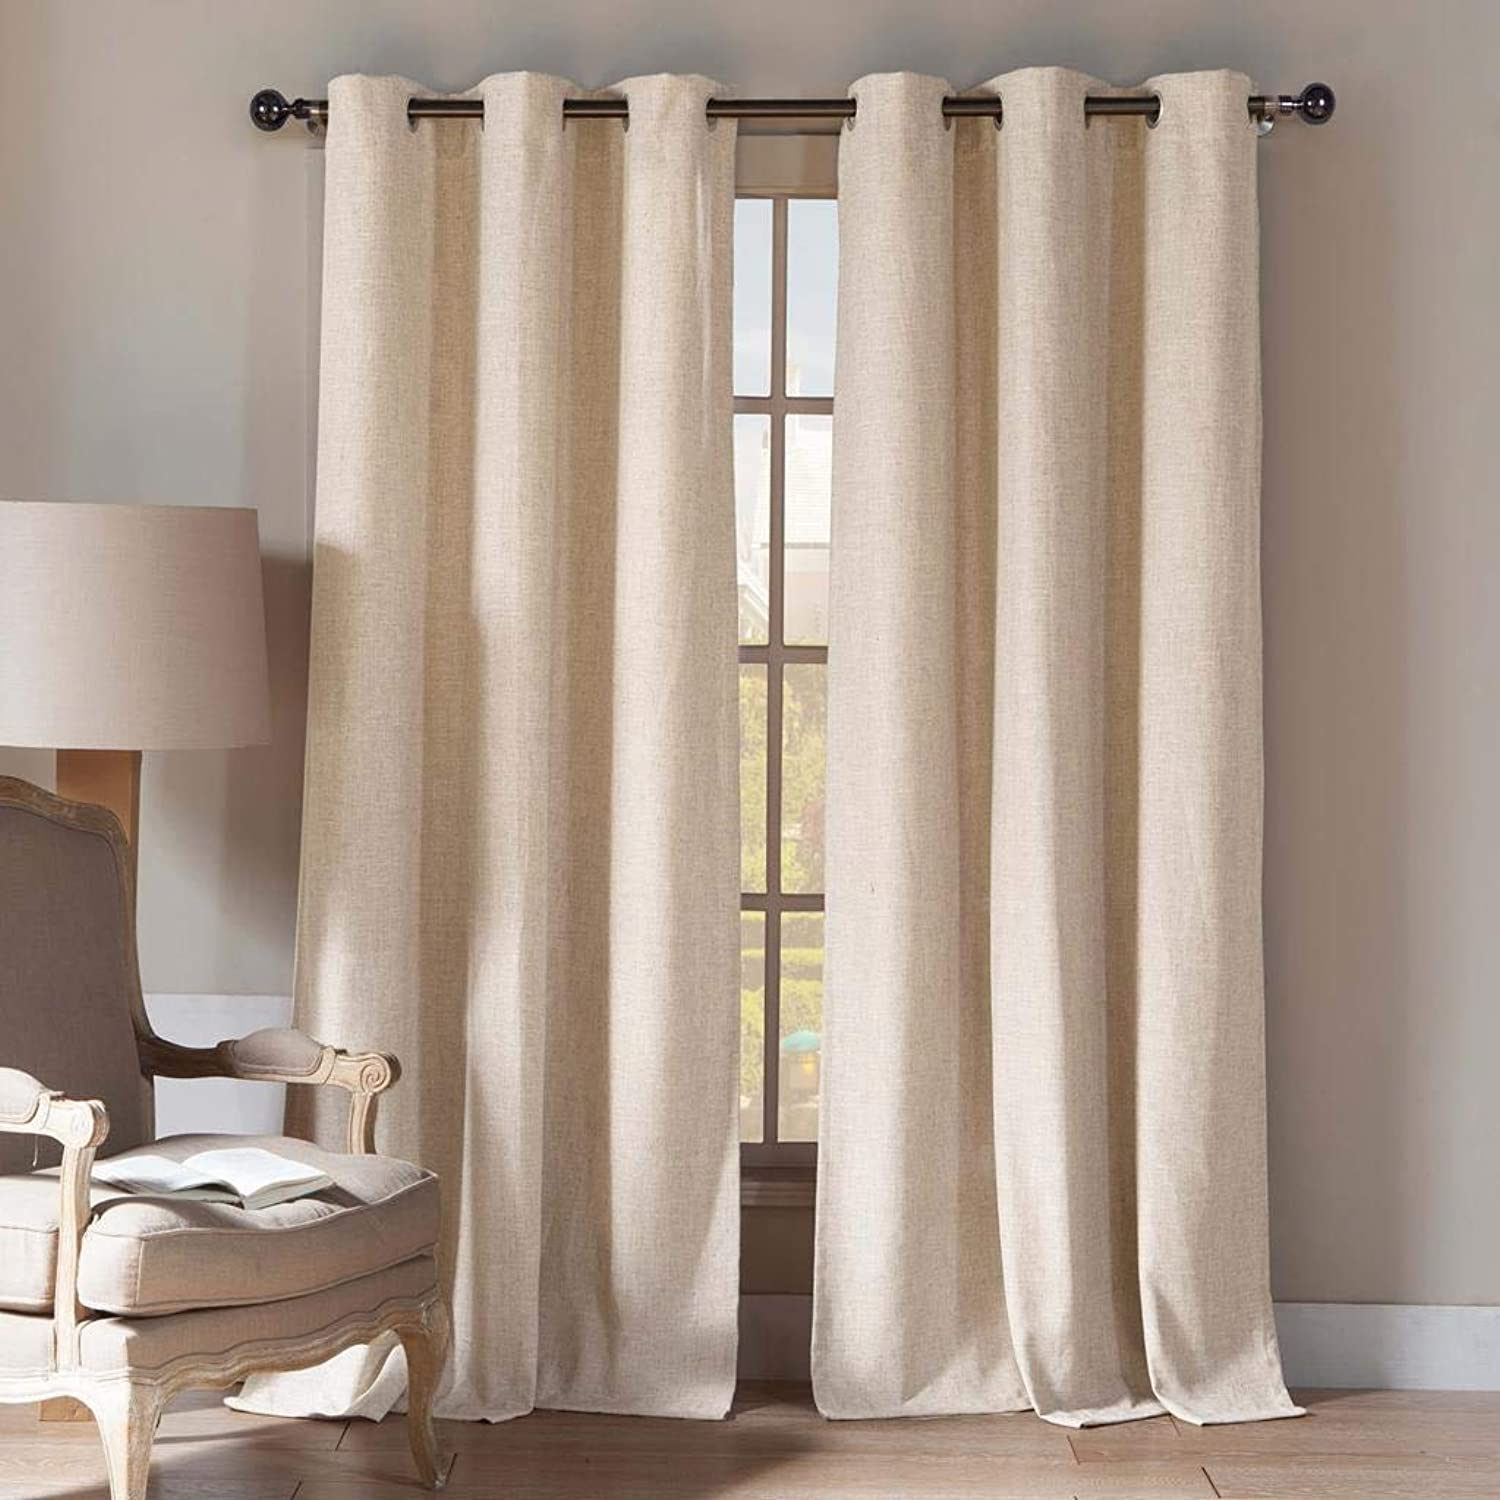 Home Maison - Home Fashion Natural Linen Blend Textured Grommet Top Window Curtains for Living Room & Bedroom - Assorted colors - Set of 2 Panels (54 X 84 Inch - Linen)